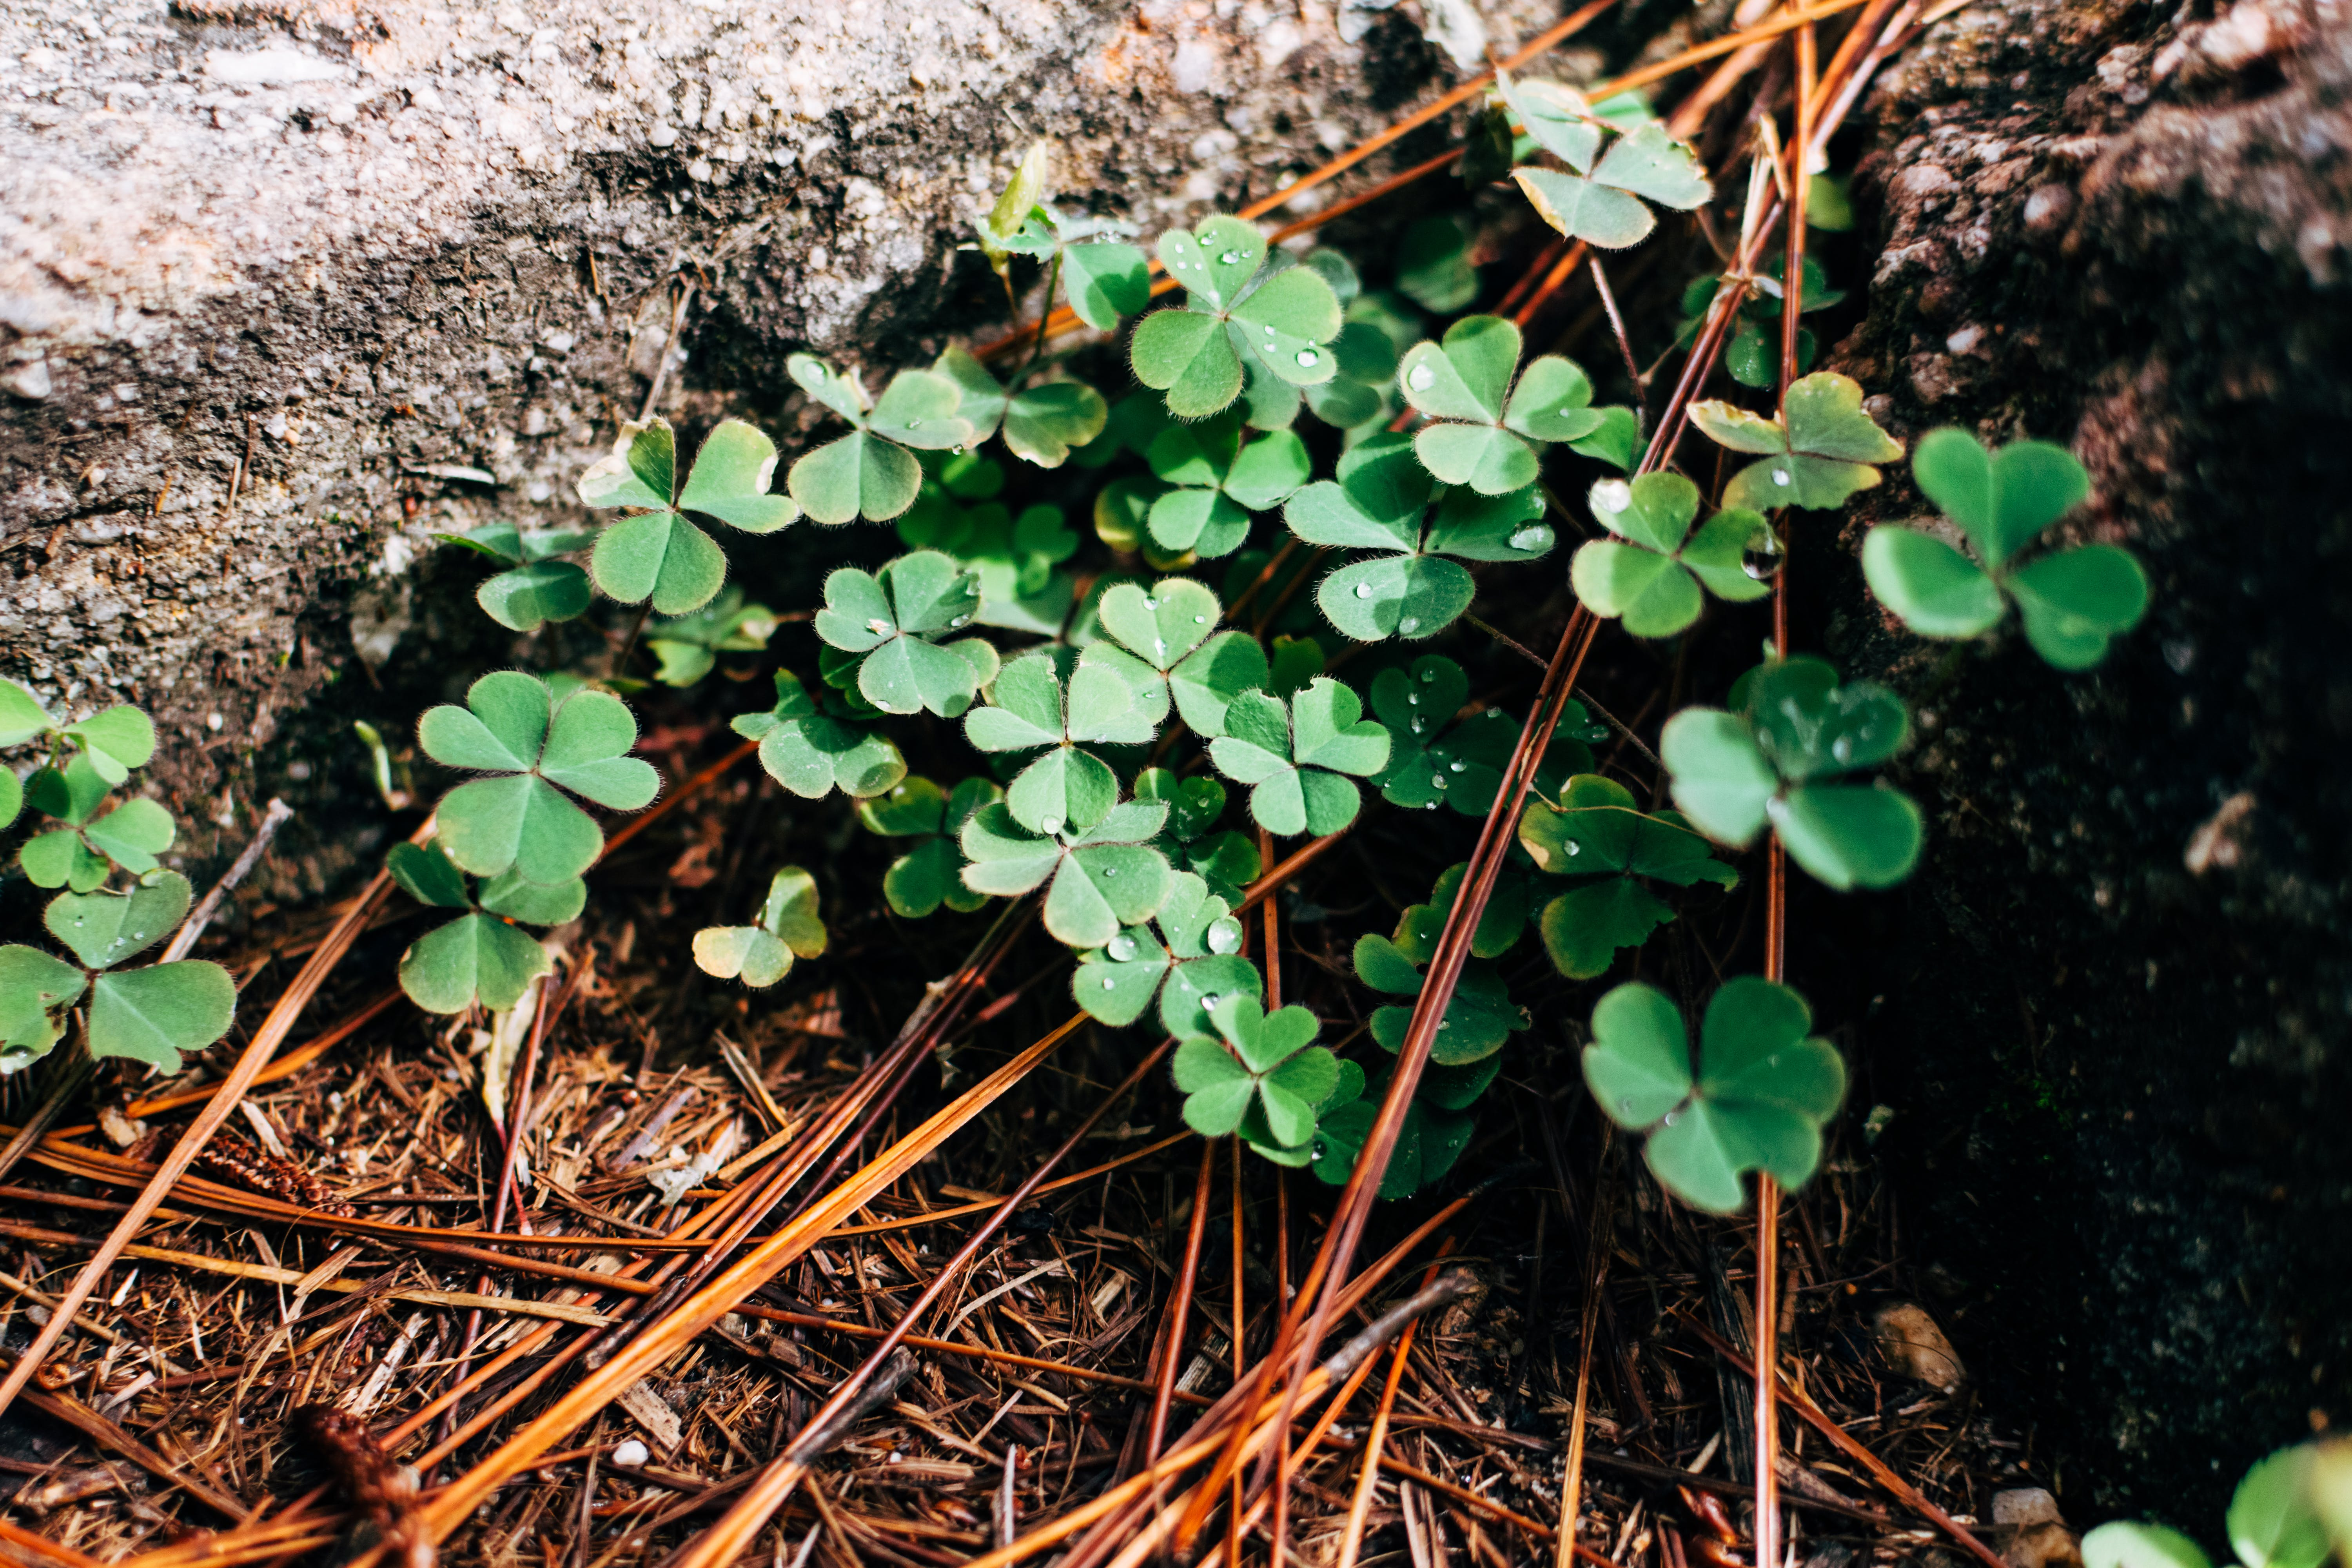 Photography of Green Clover Plants